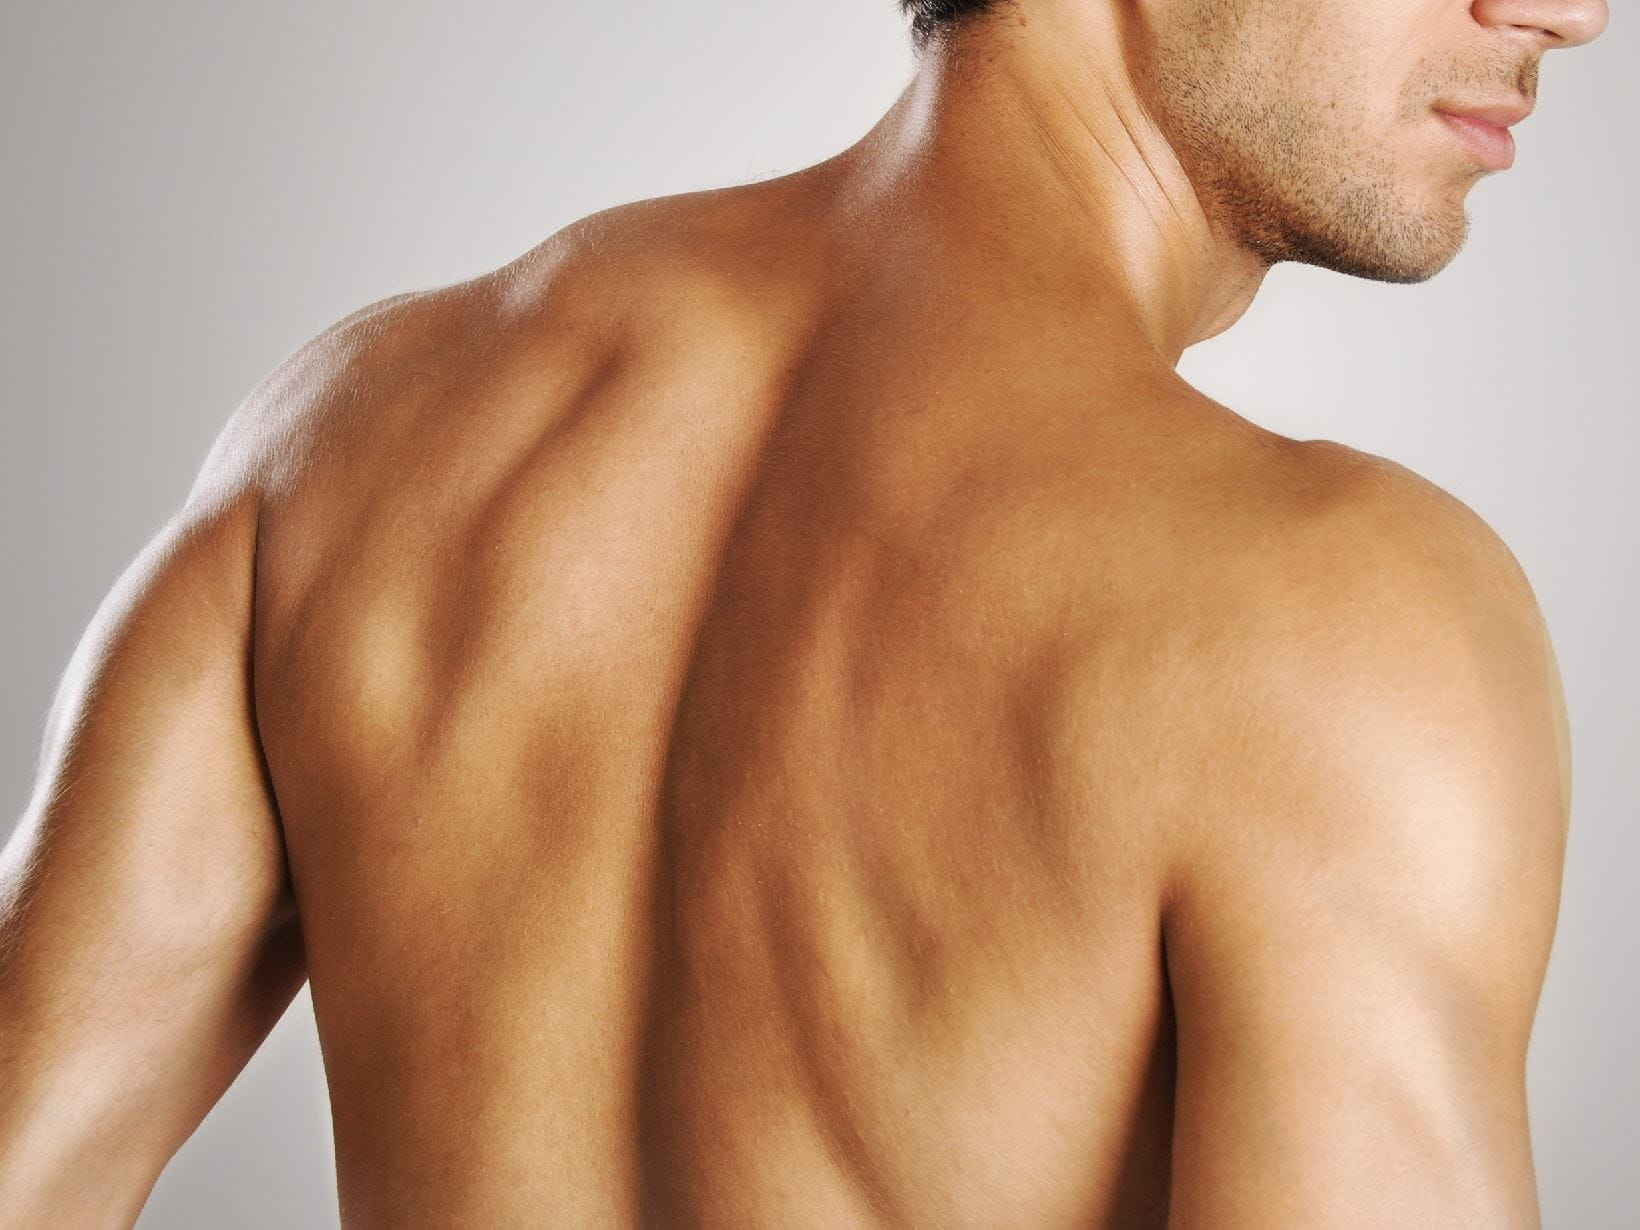 manscaping your back hair using a mirror